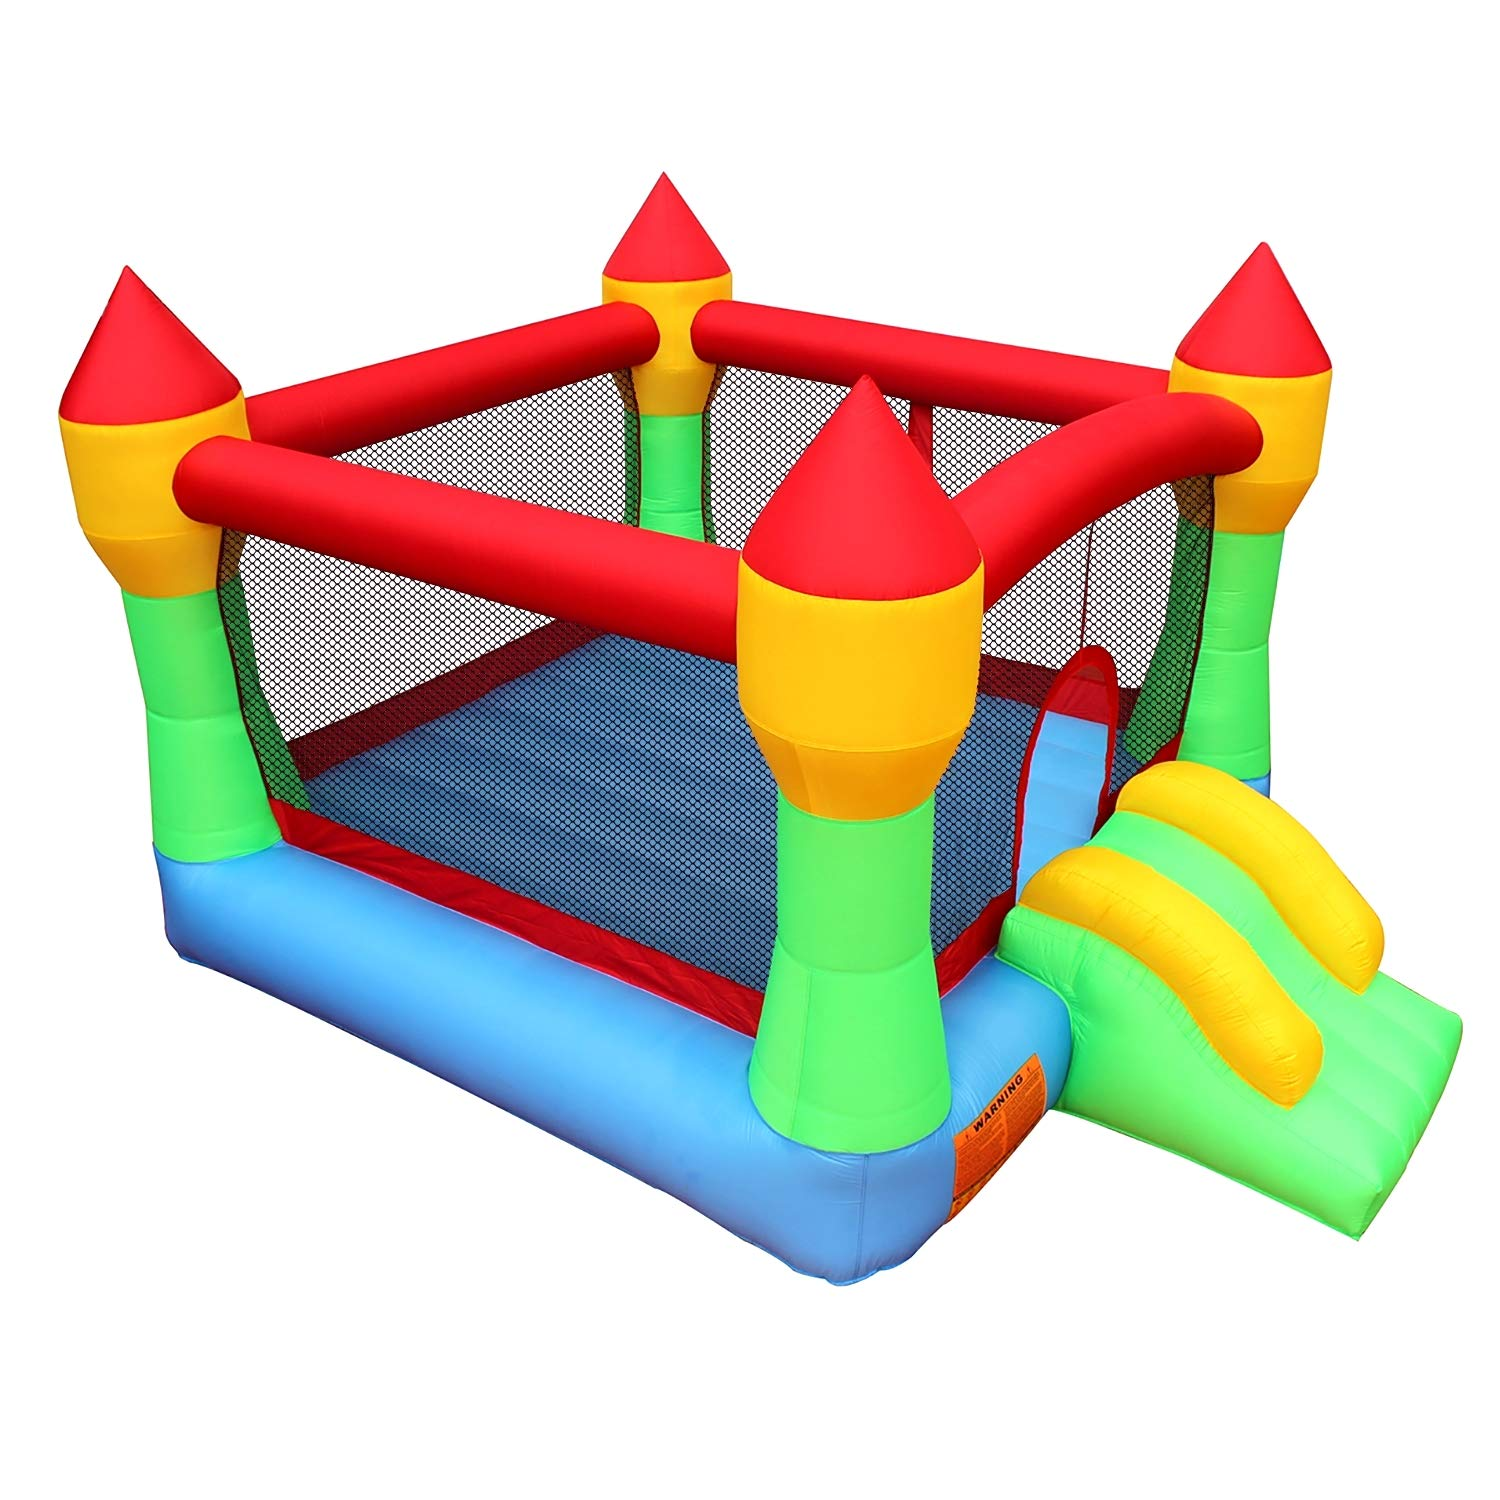 BestParty Inflatable Bounce House Castle Jumper Moonwalk Slide Inflatable Jumping Bouncy House with Blower by BestParty (Image #3)